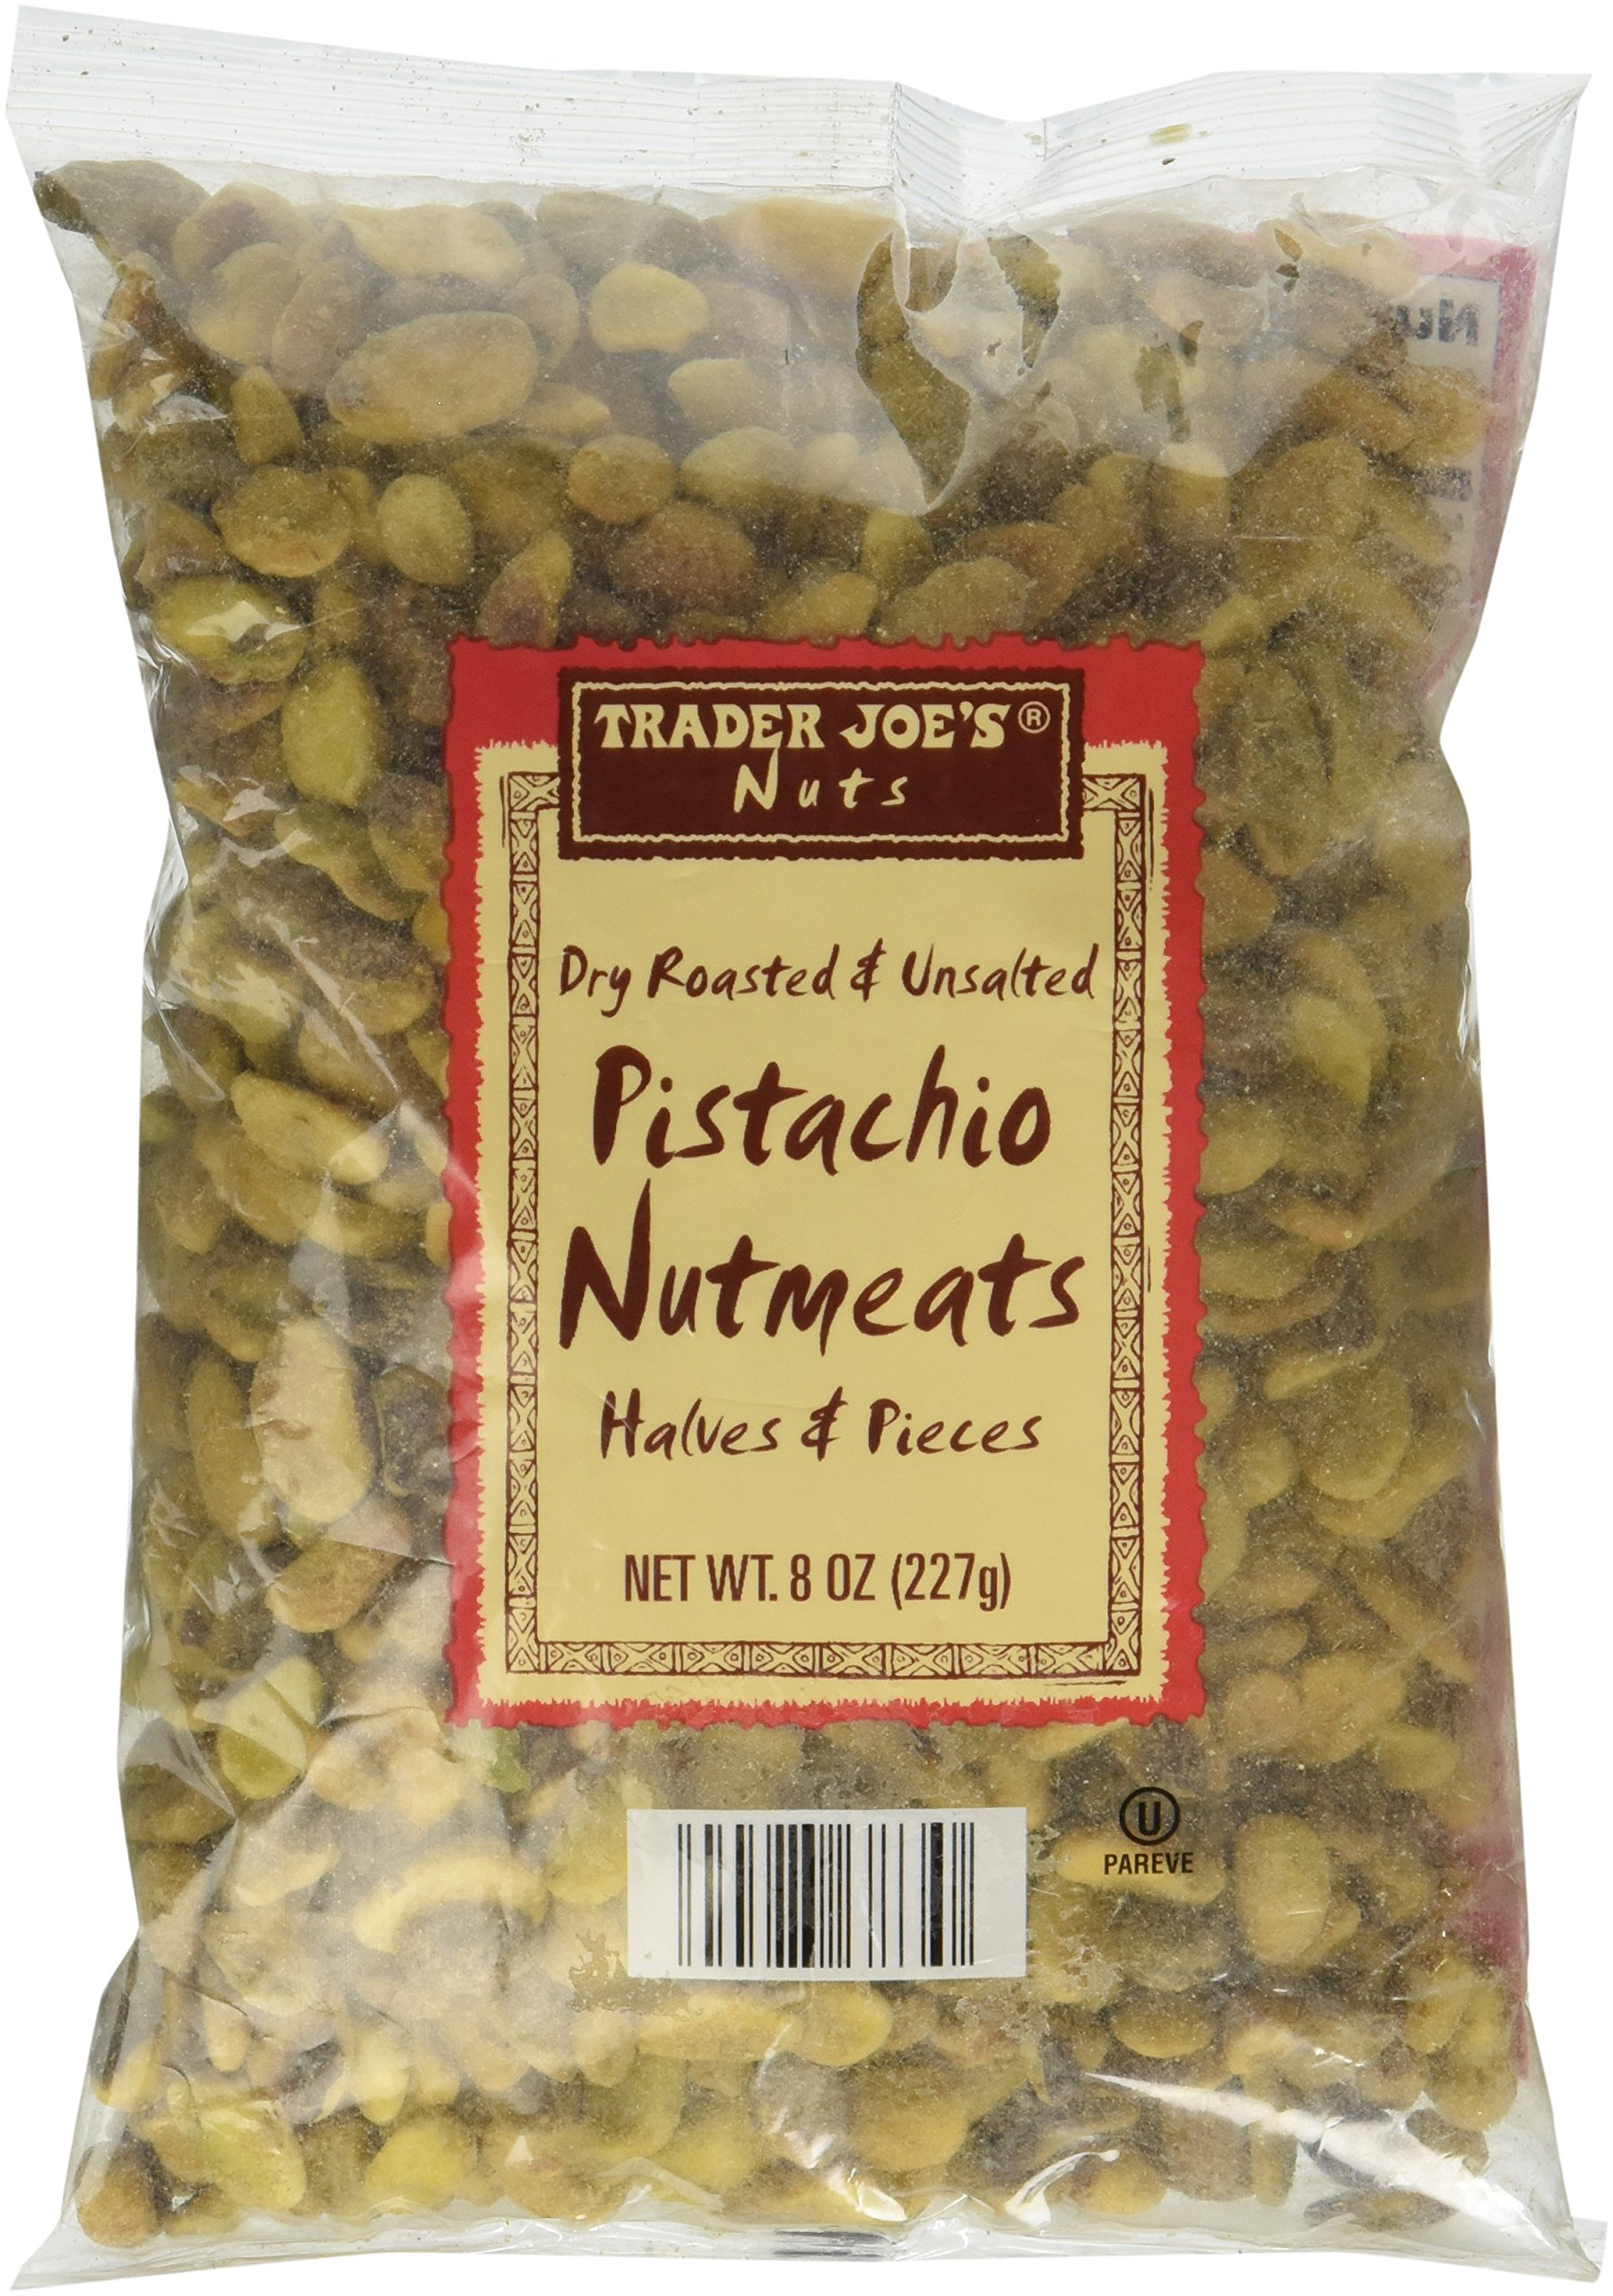 Trader Joe's Dry Roasted and Unsalted Pistachio Nutmeats Halves and Pieces, 8 oz by Trader Joe's